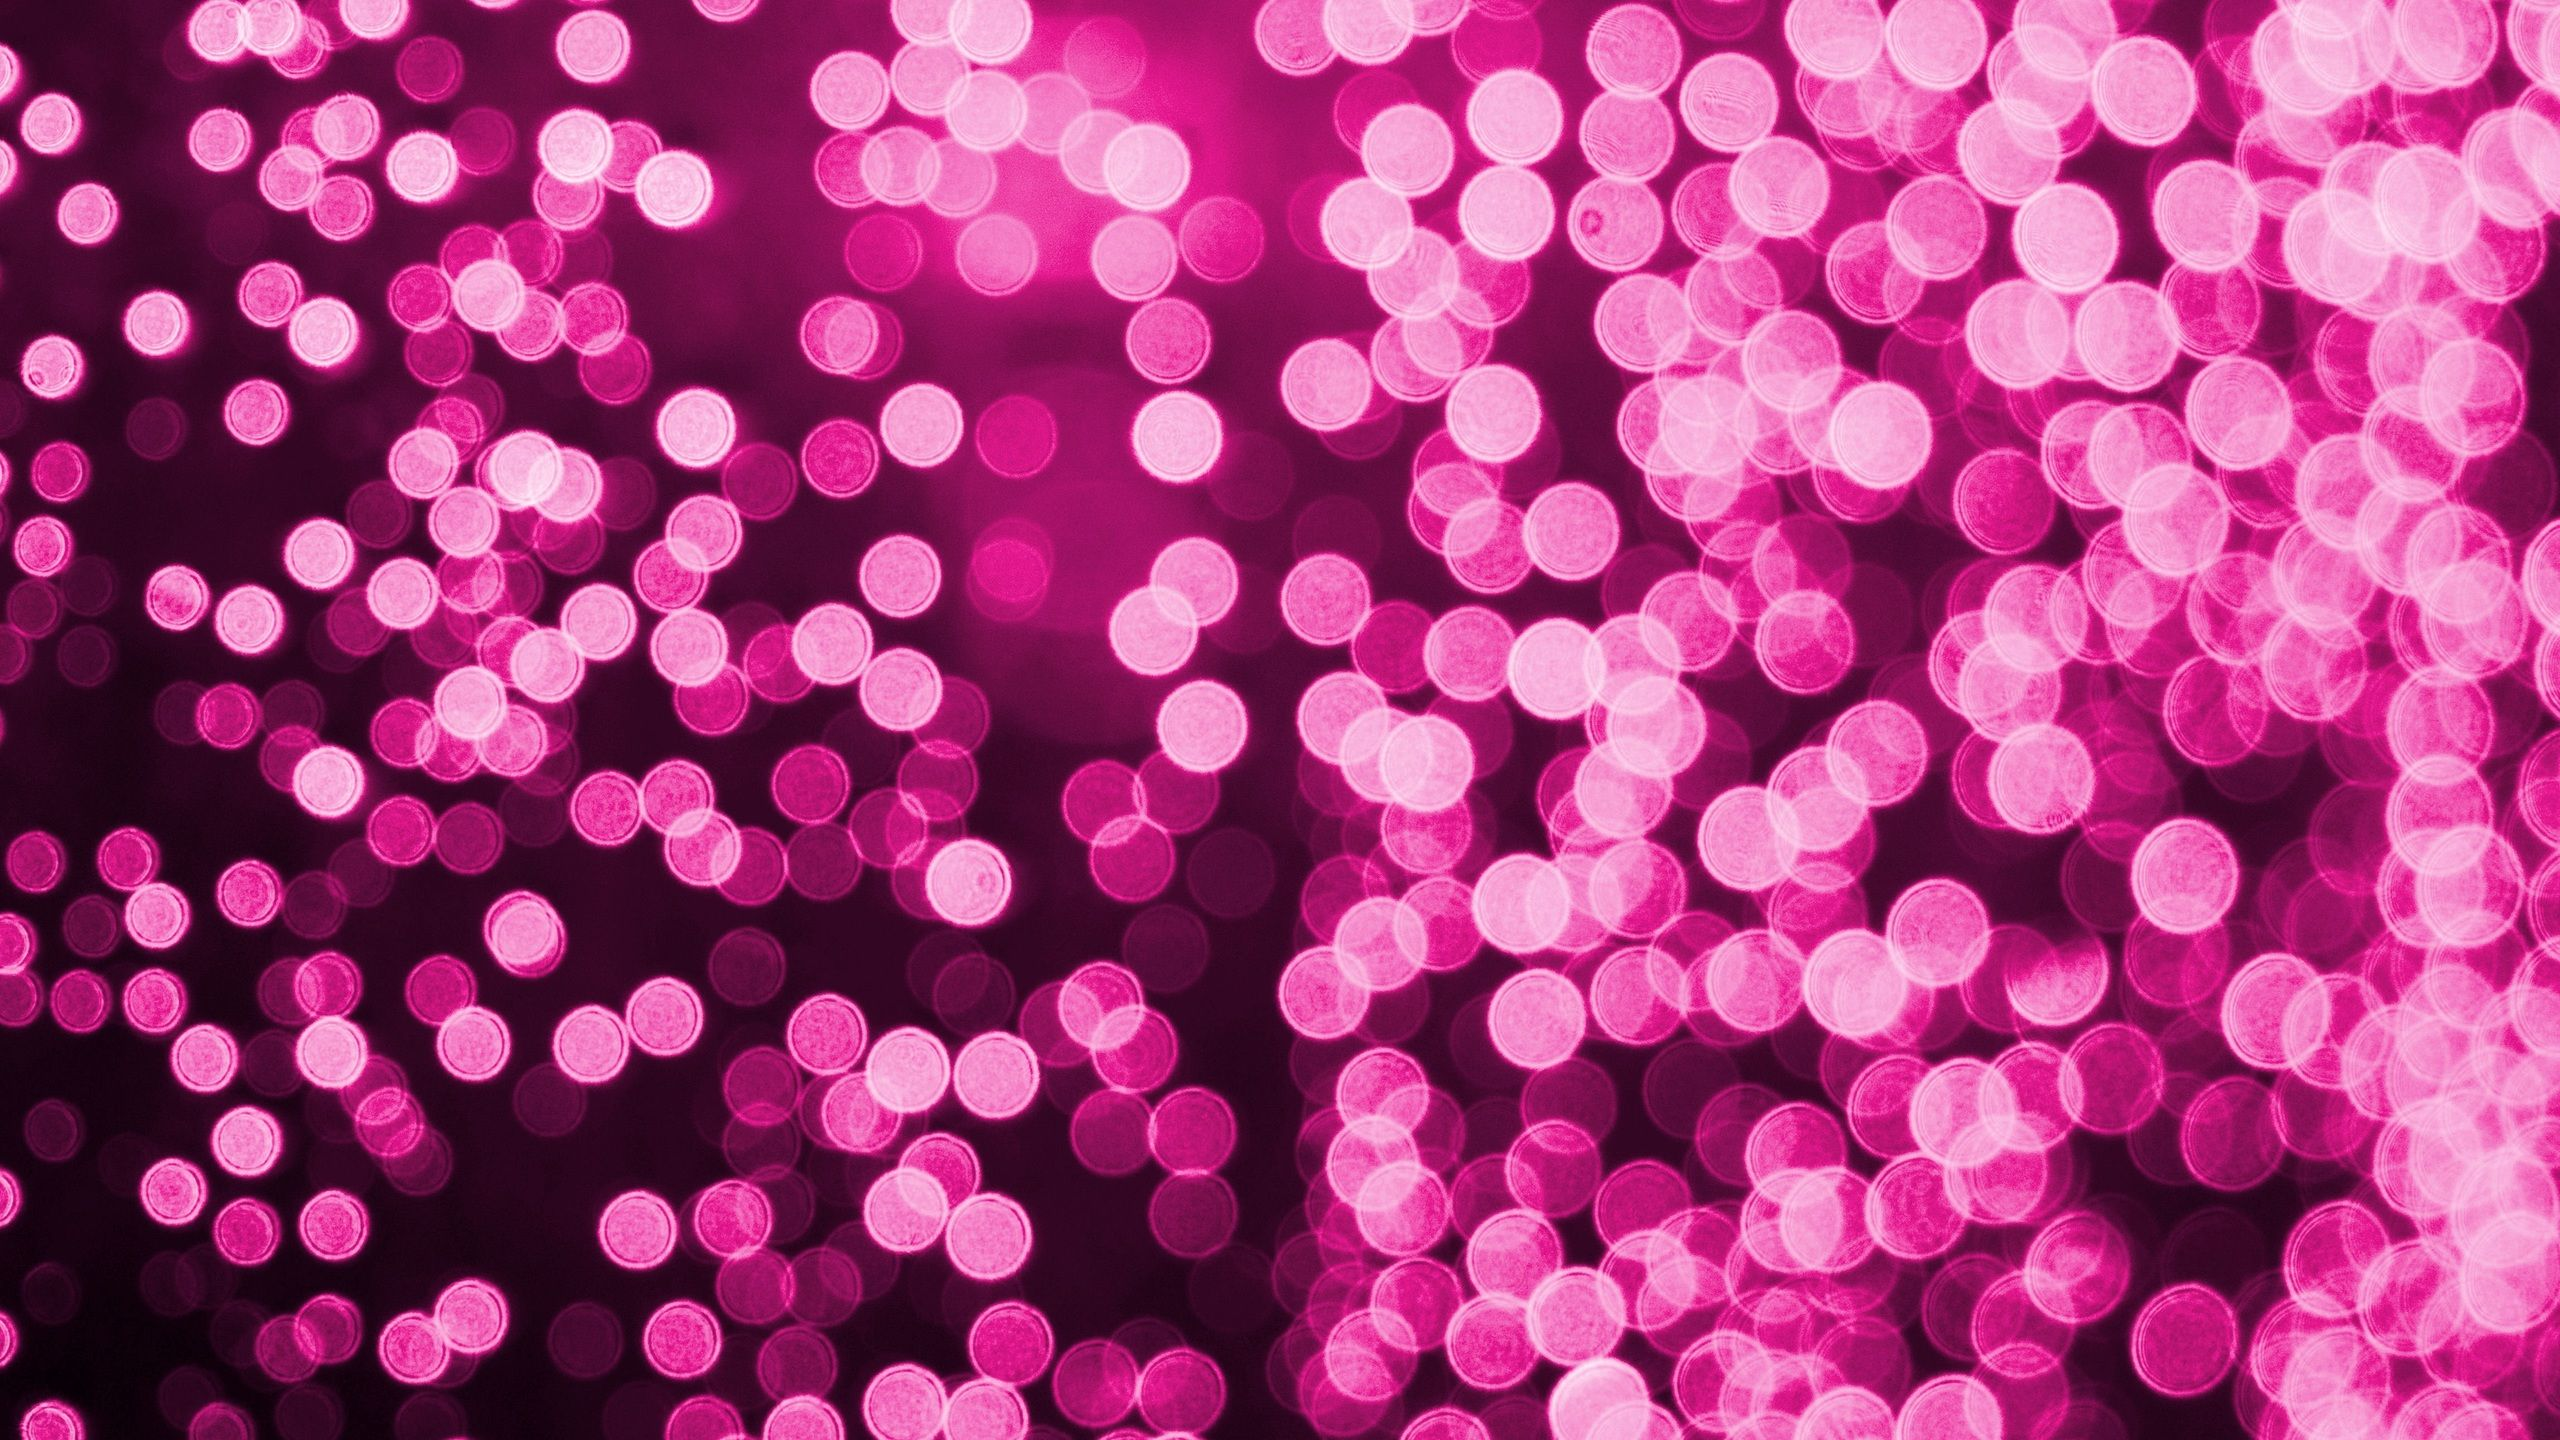 2560x1440 Pink Wallpapers Top Free 2560x1440 Pink Backgrounds Wallpaperaccess